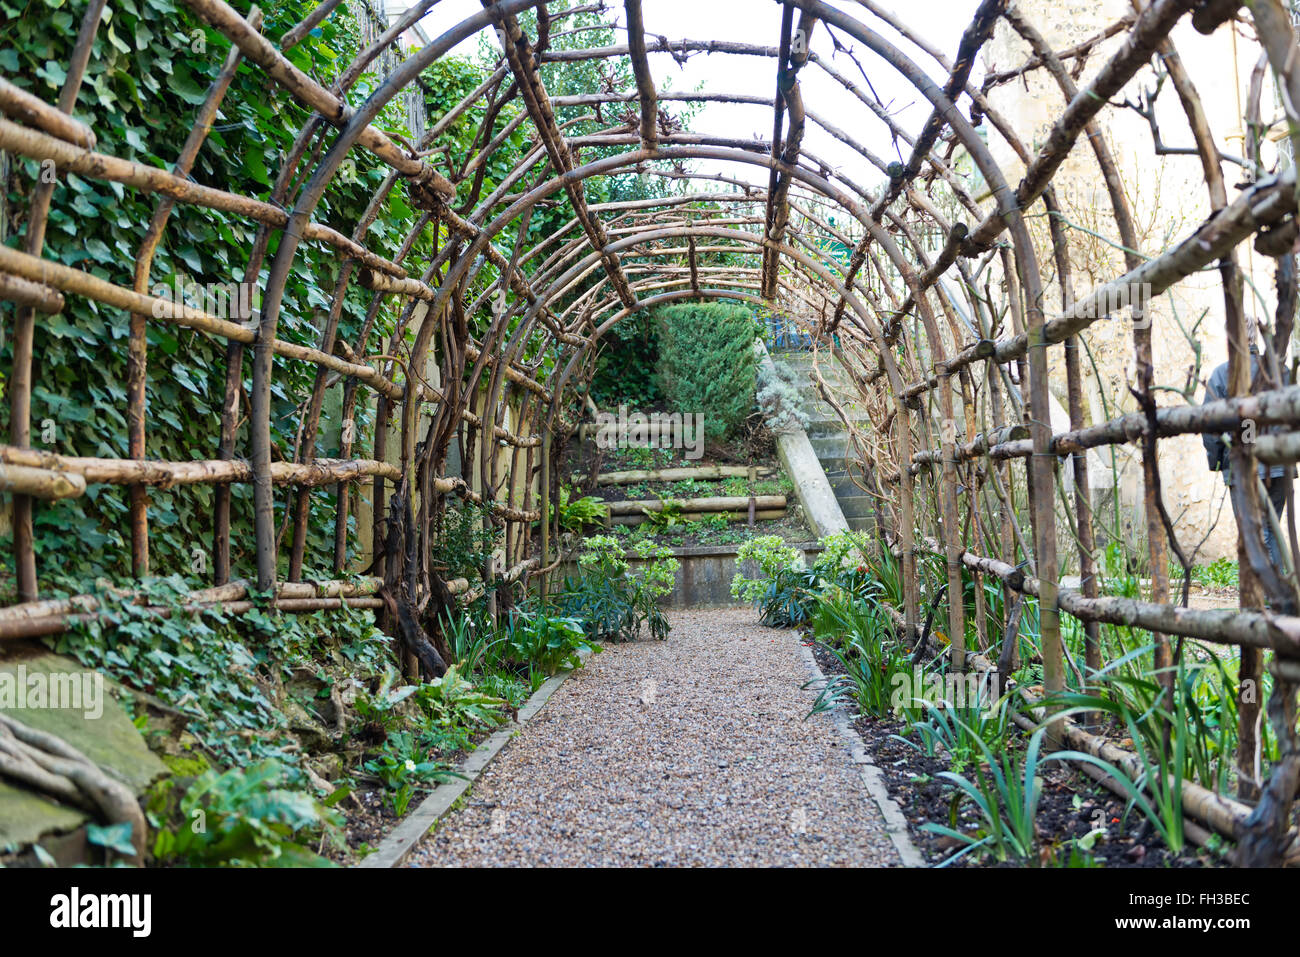 Amazing Seedlings Beside Stone Path Of Long Wooden Garden Trellis Outside Of The  Medieval Era Winchester Castle In The United Kingdom